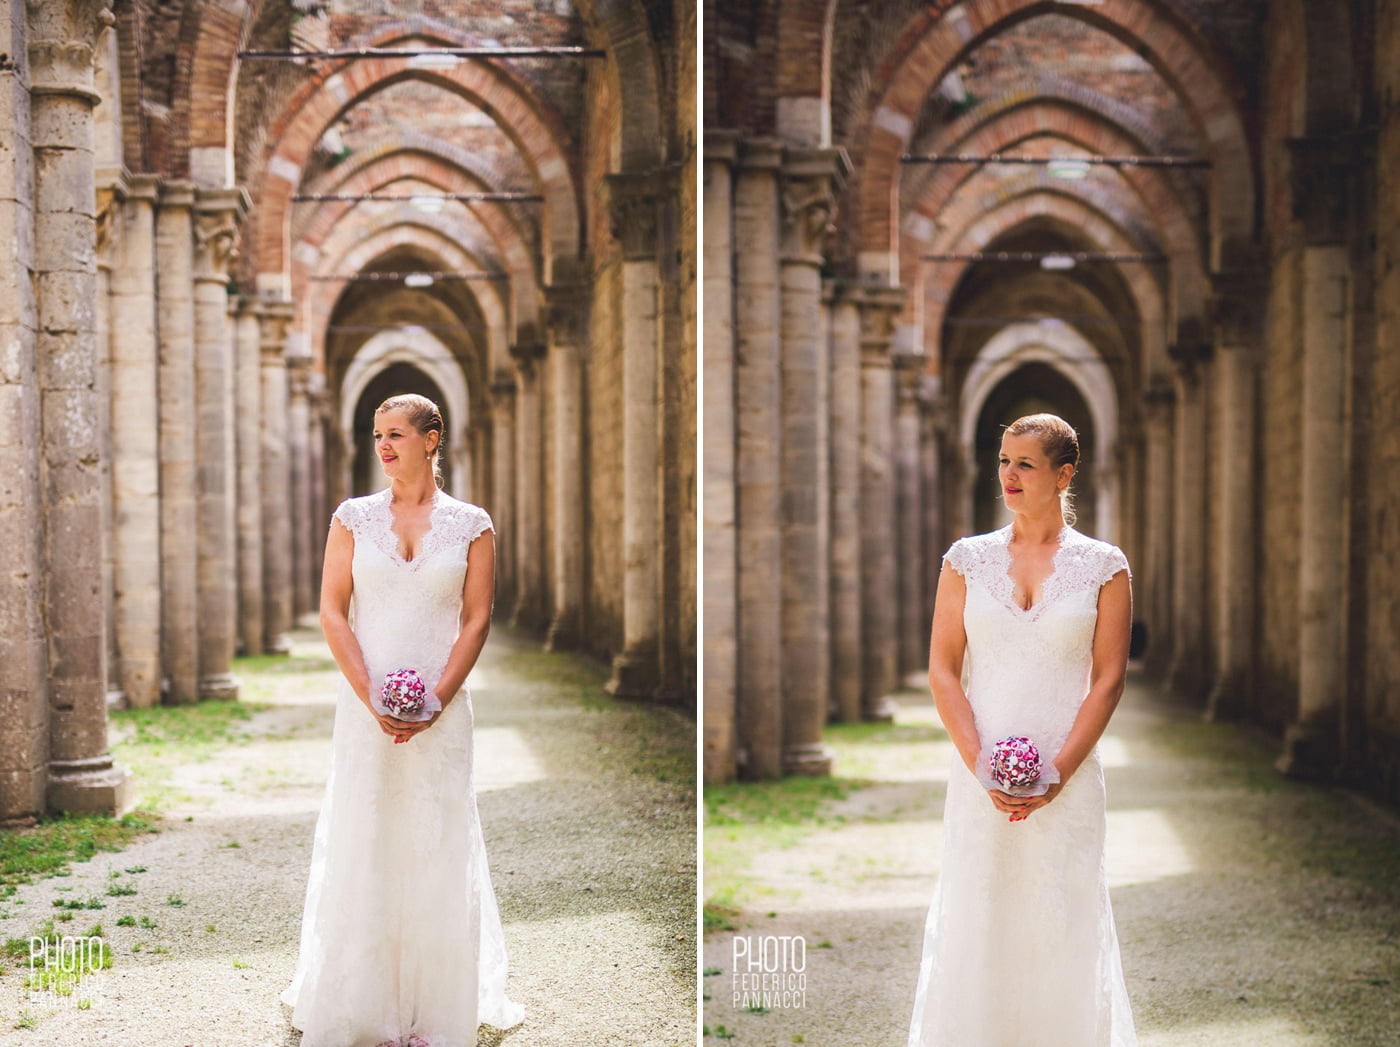 043-DestinationWedding-Sangalgano